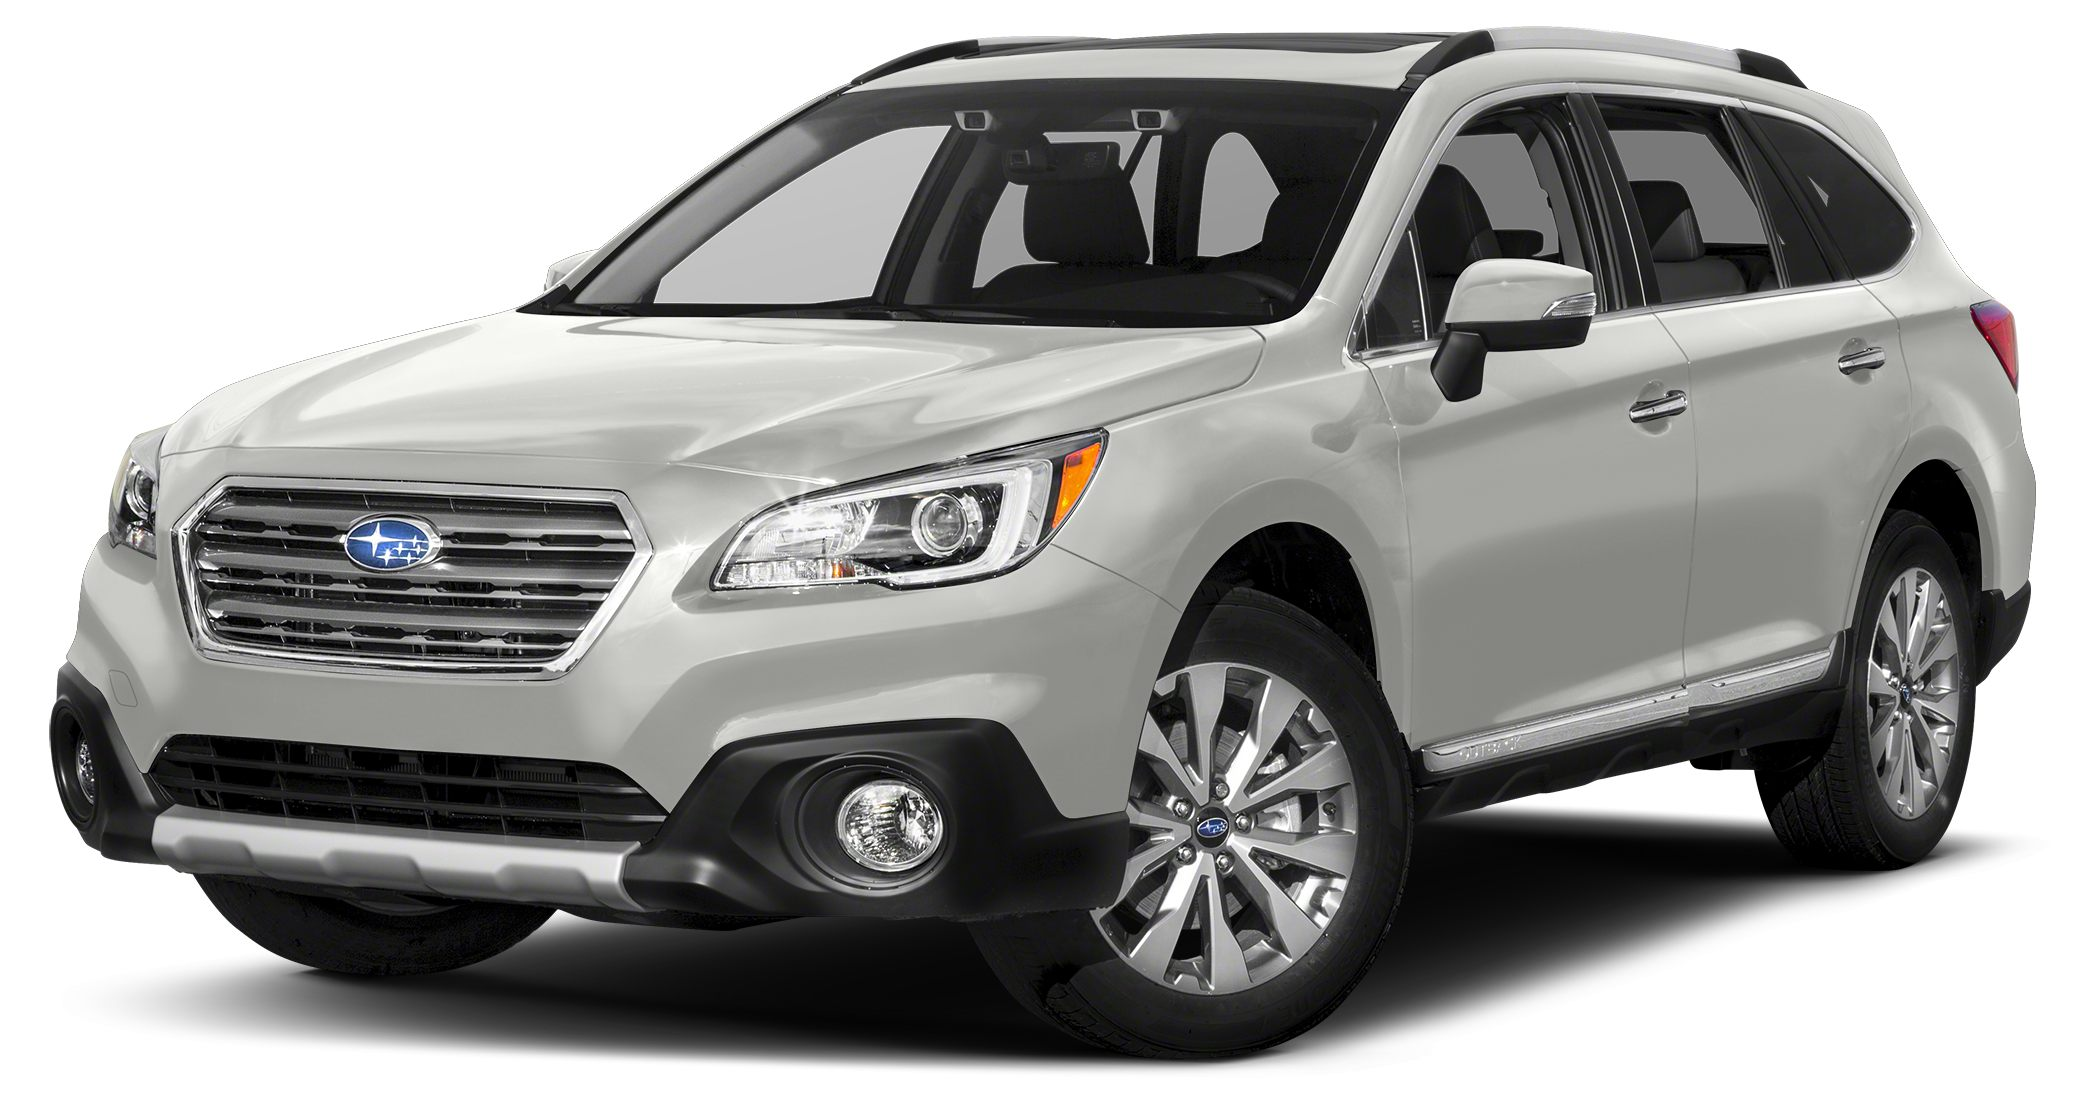 2017 Subaru Outback 25i Touring Miles 5Color Crystal White Pearl Stock SH426592 VIN 4S4BSAT